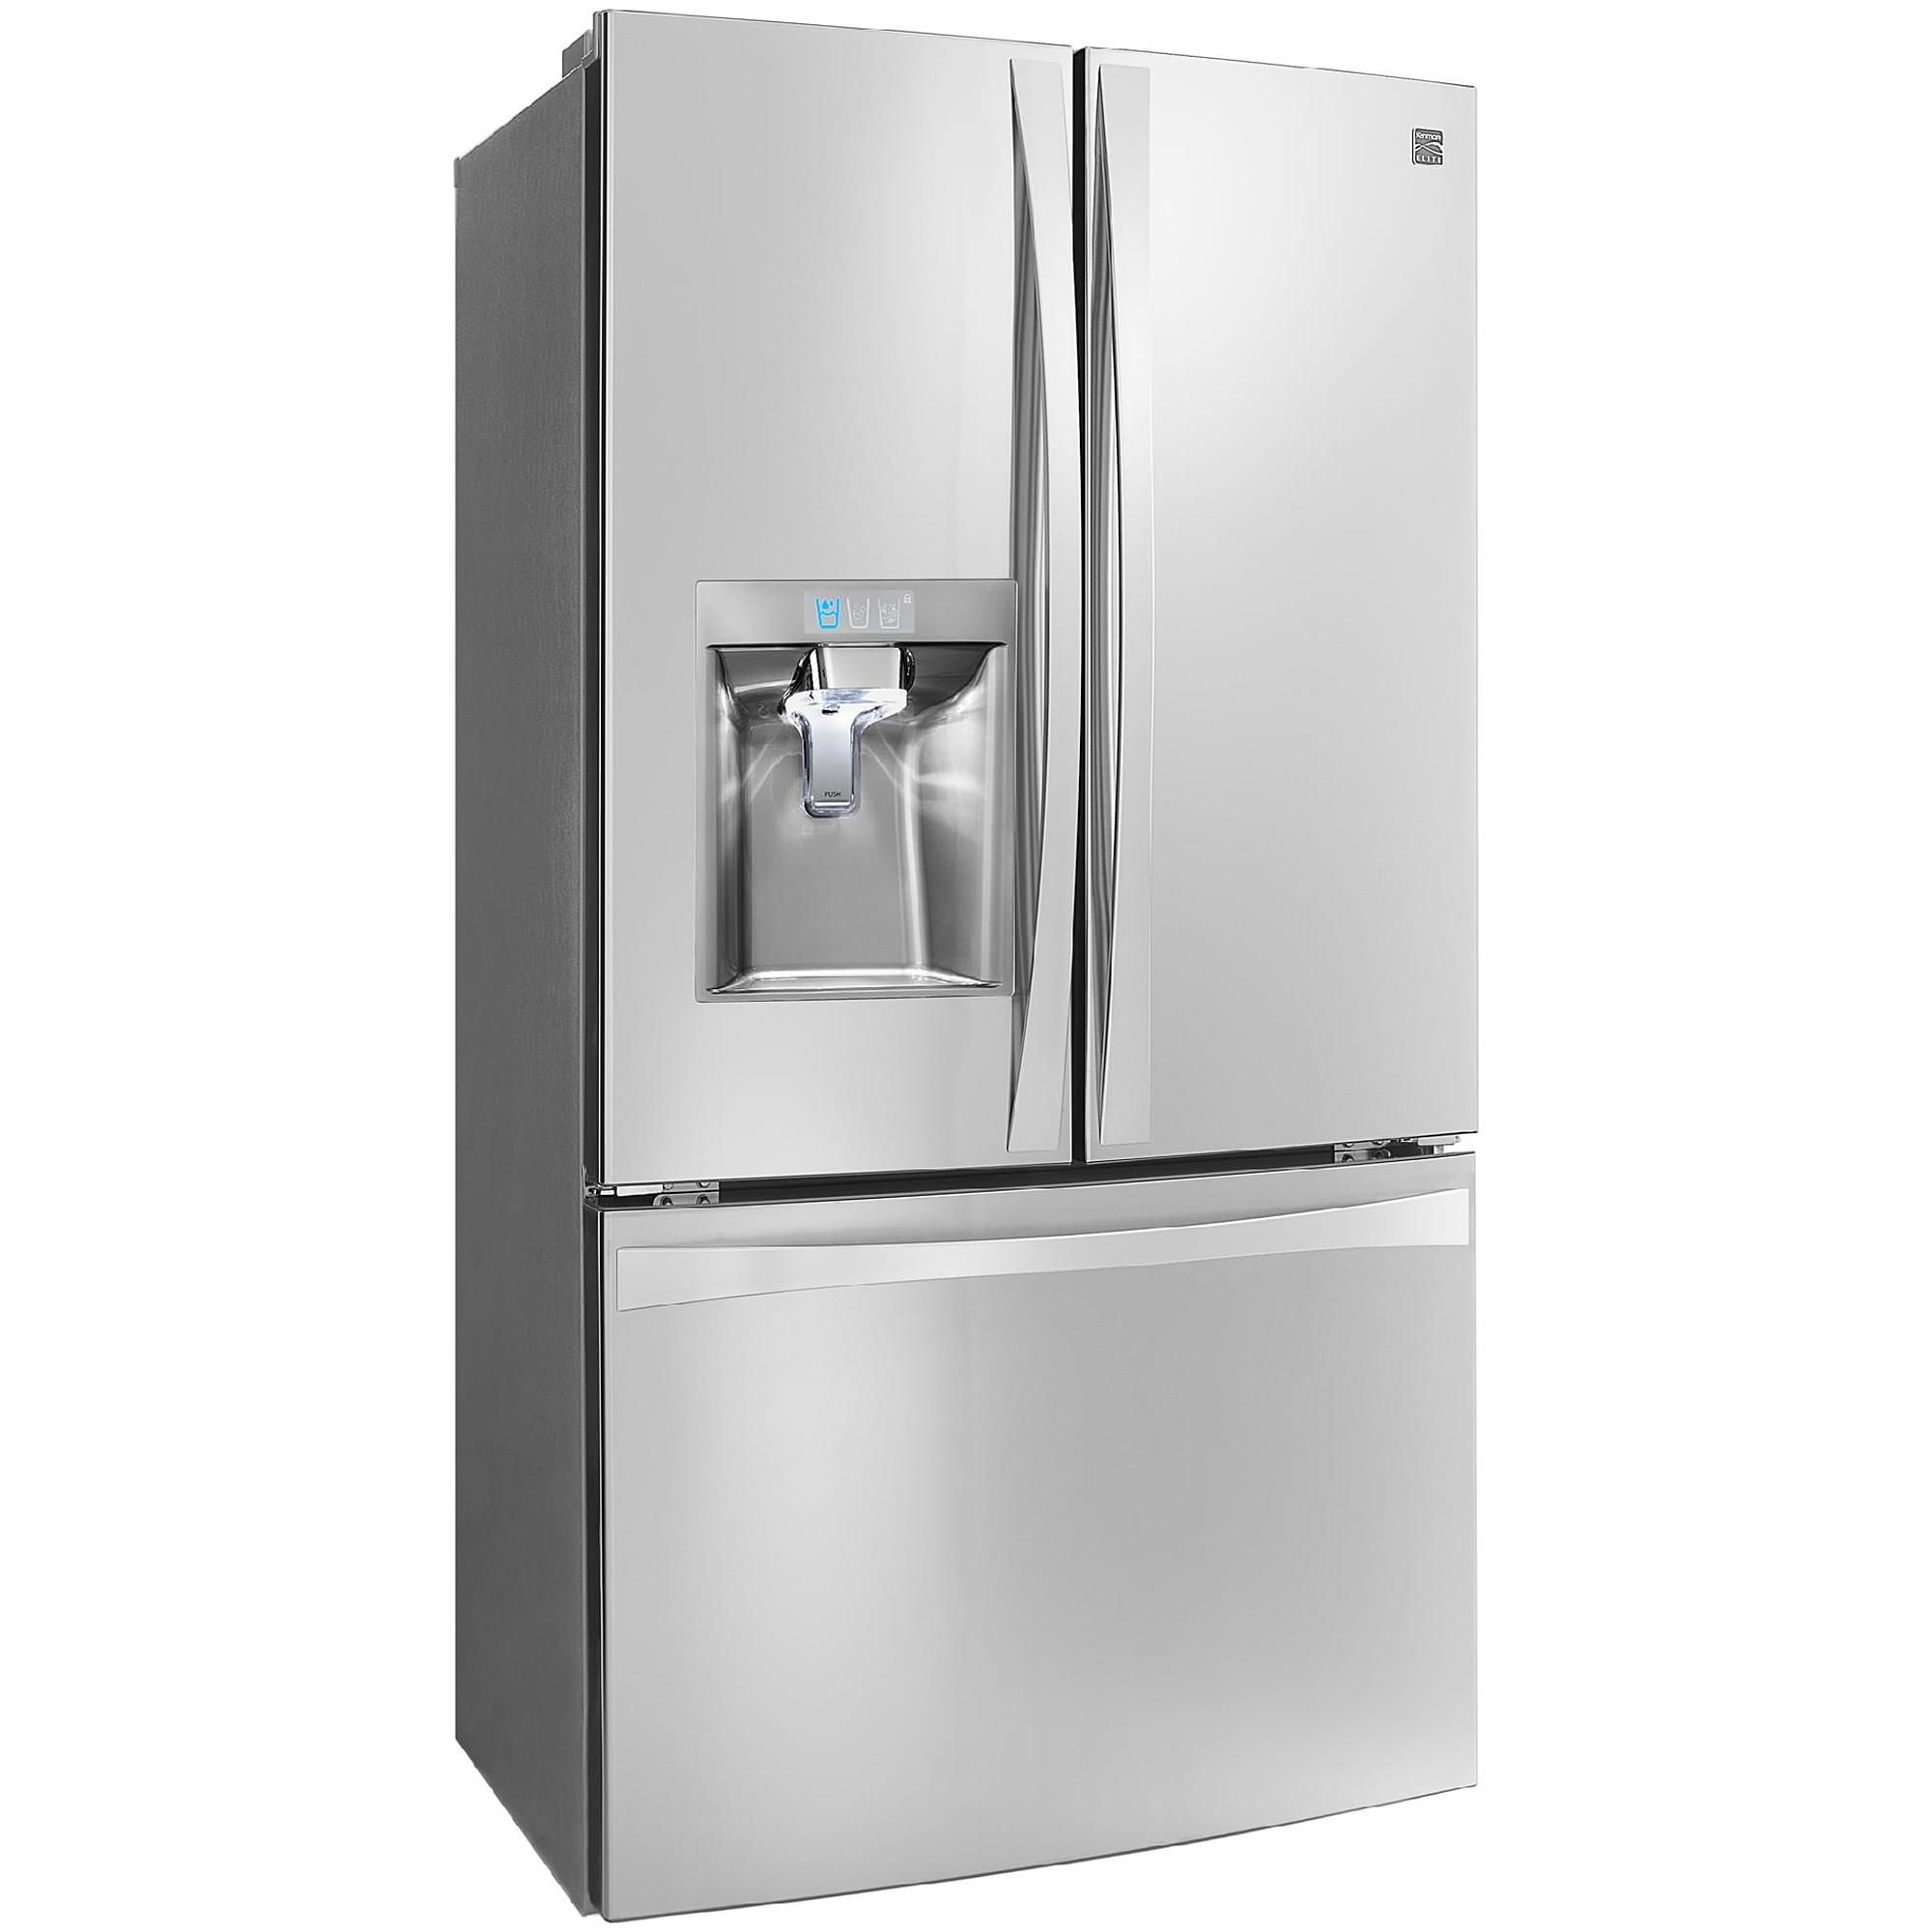 The Kenmore Elite 237 Cu Ft French Door Fridge Has More Chill